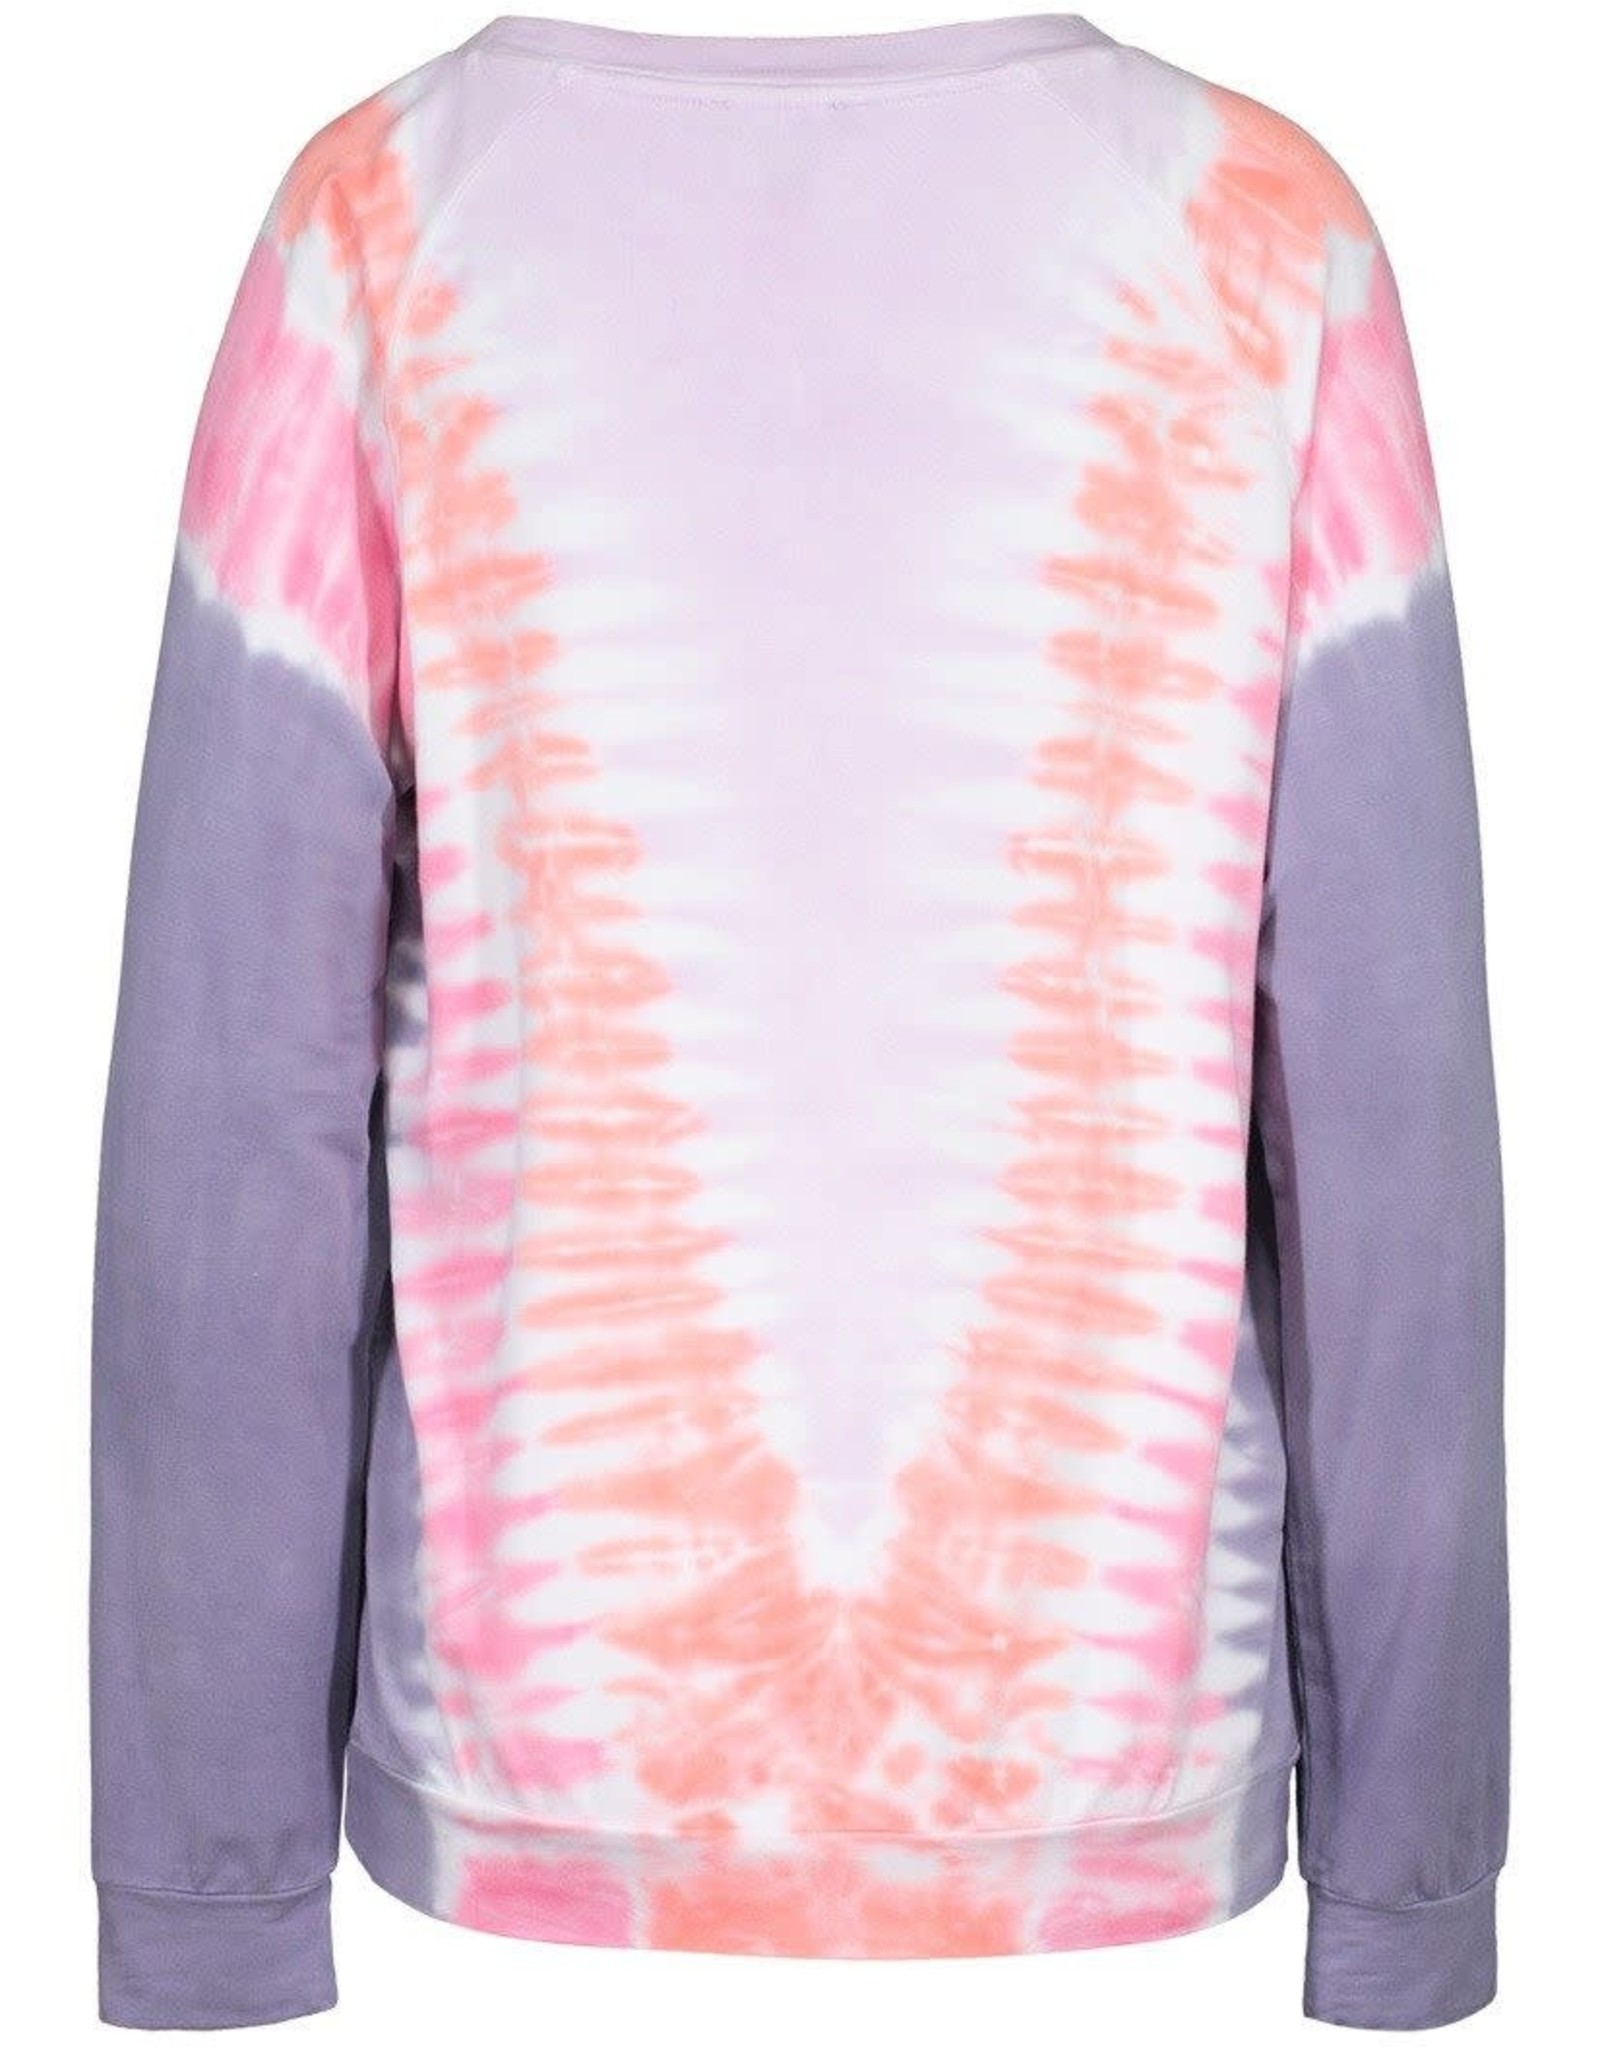 Tribal Multi Colored Tie-Dye Long Sleeve Top